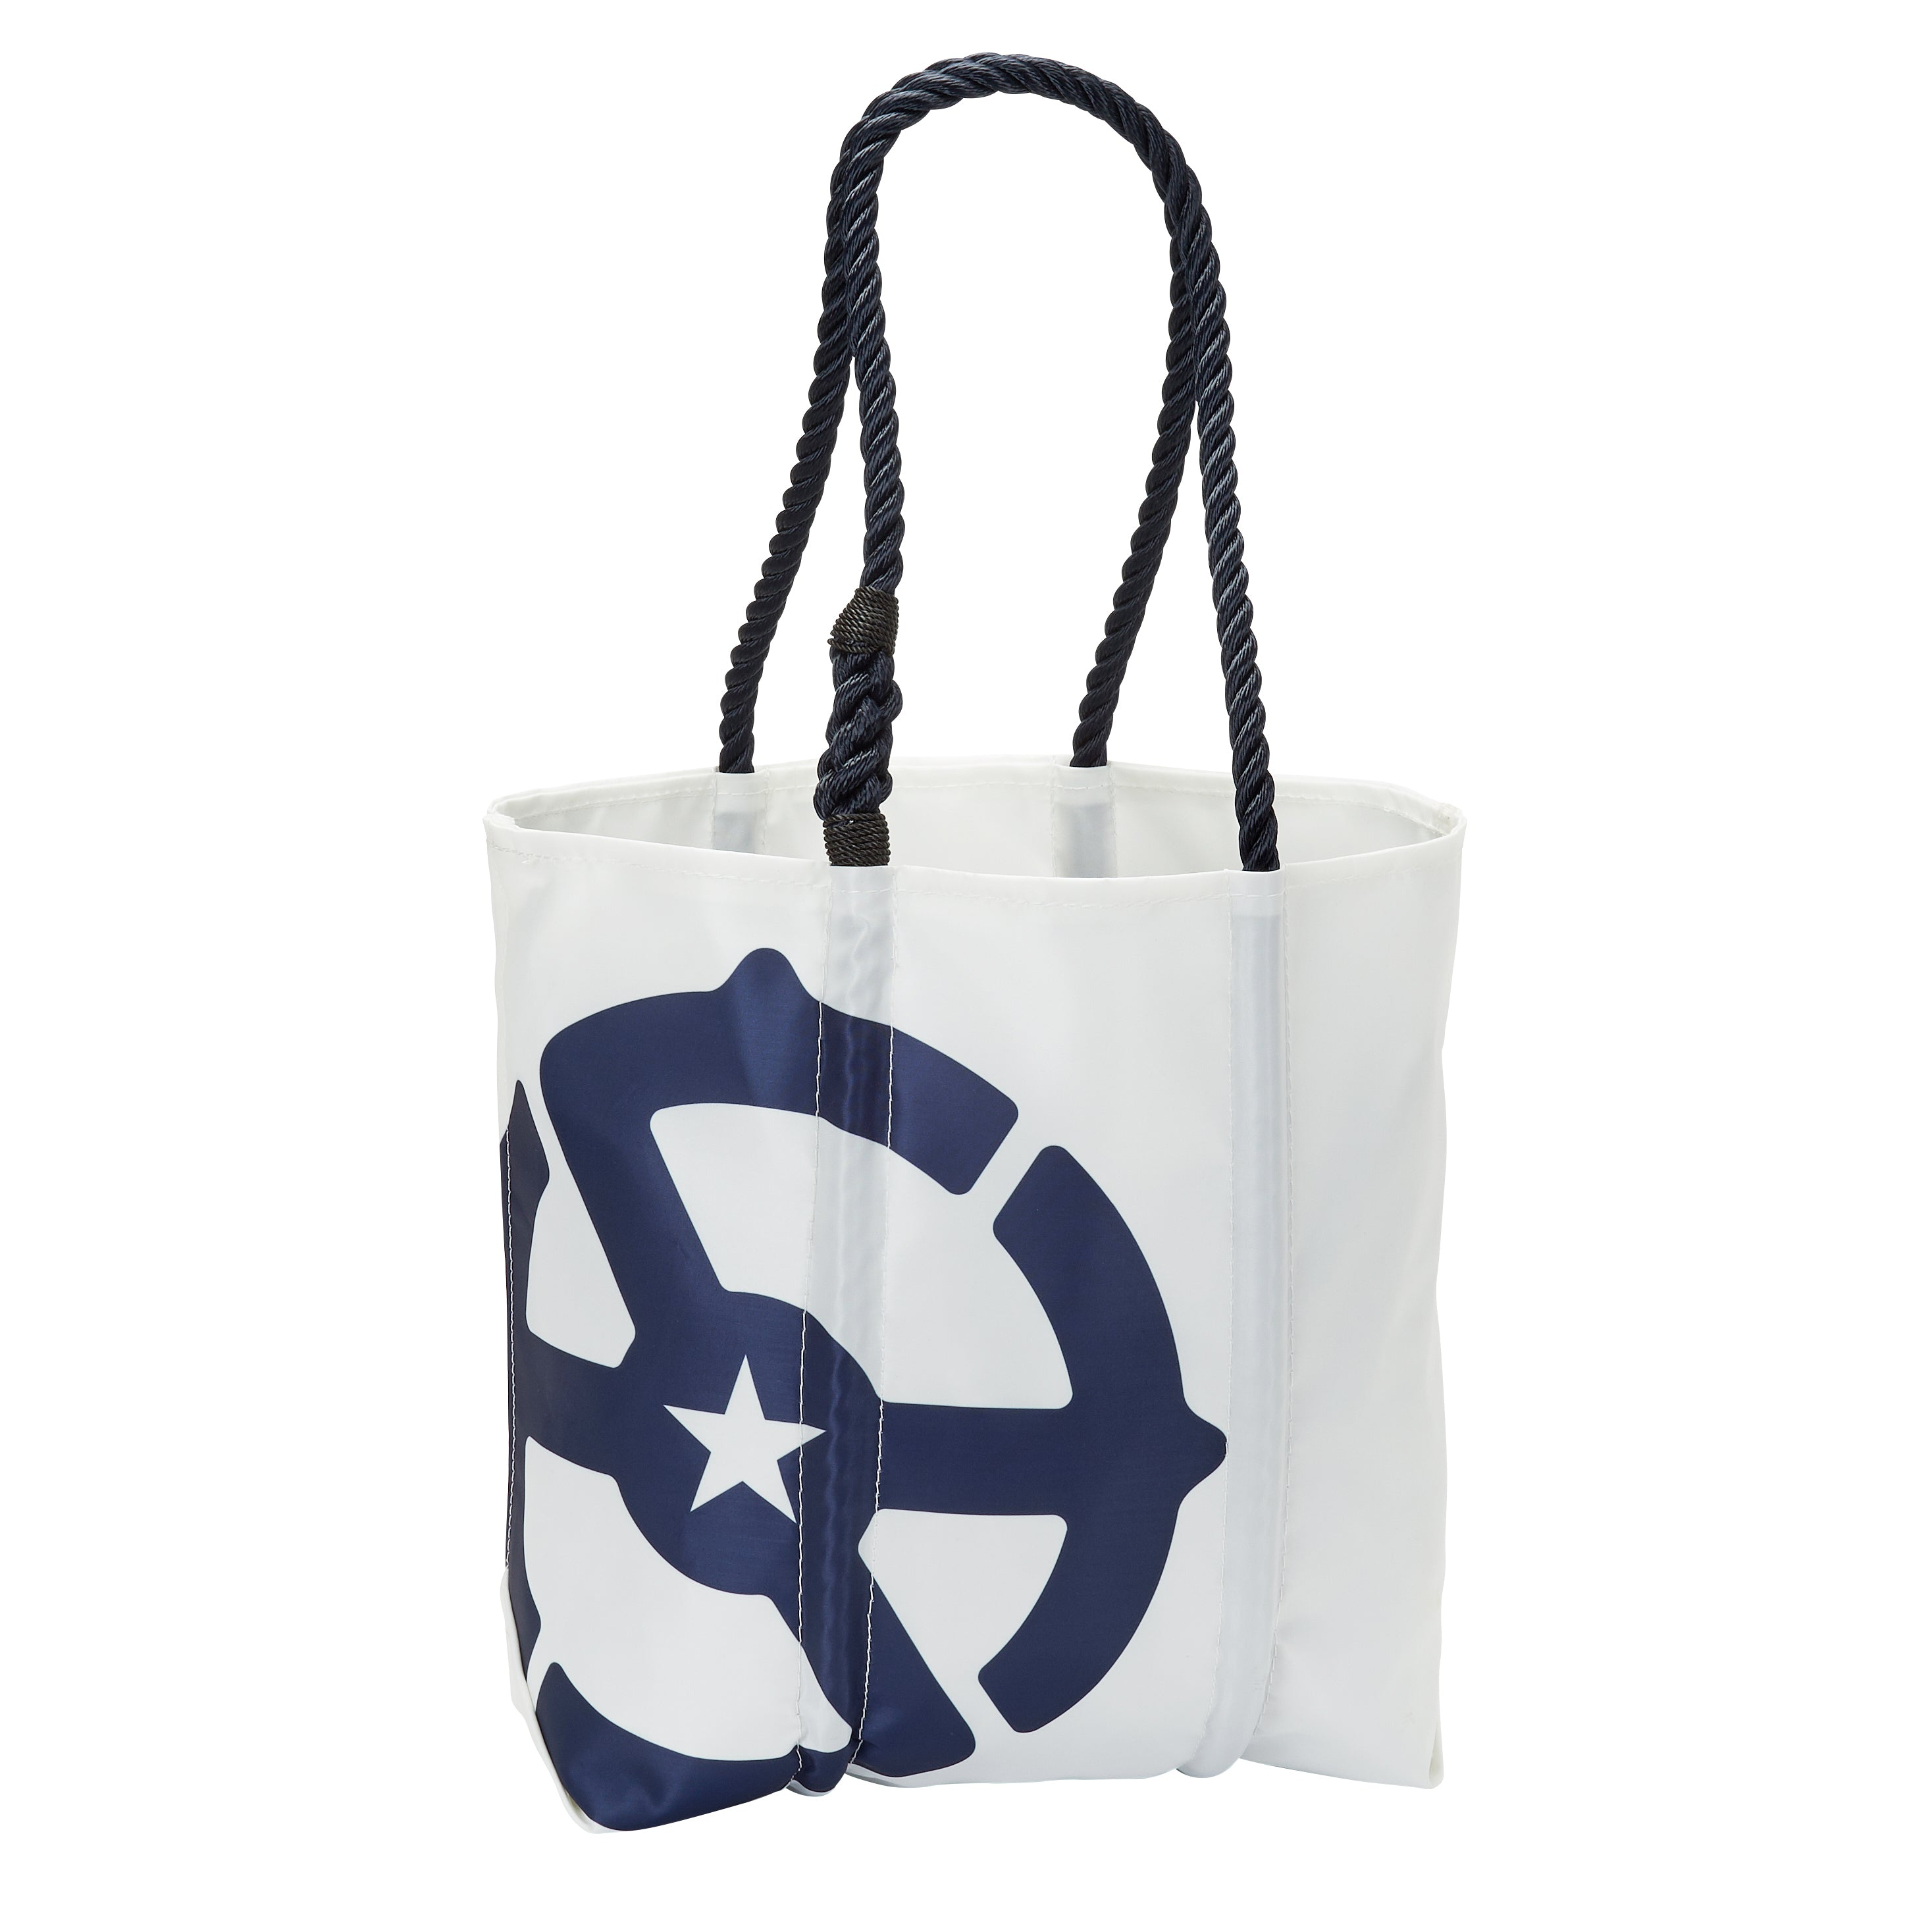 White Medium Recycled Sail Tote by Sea Bags